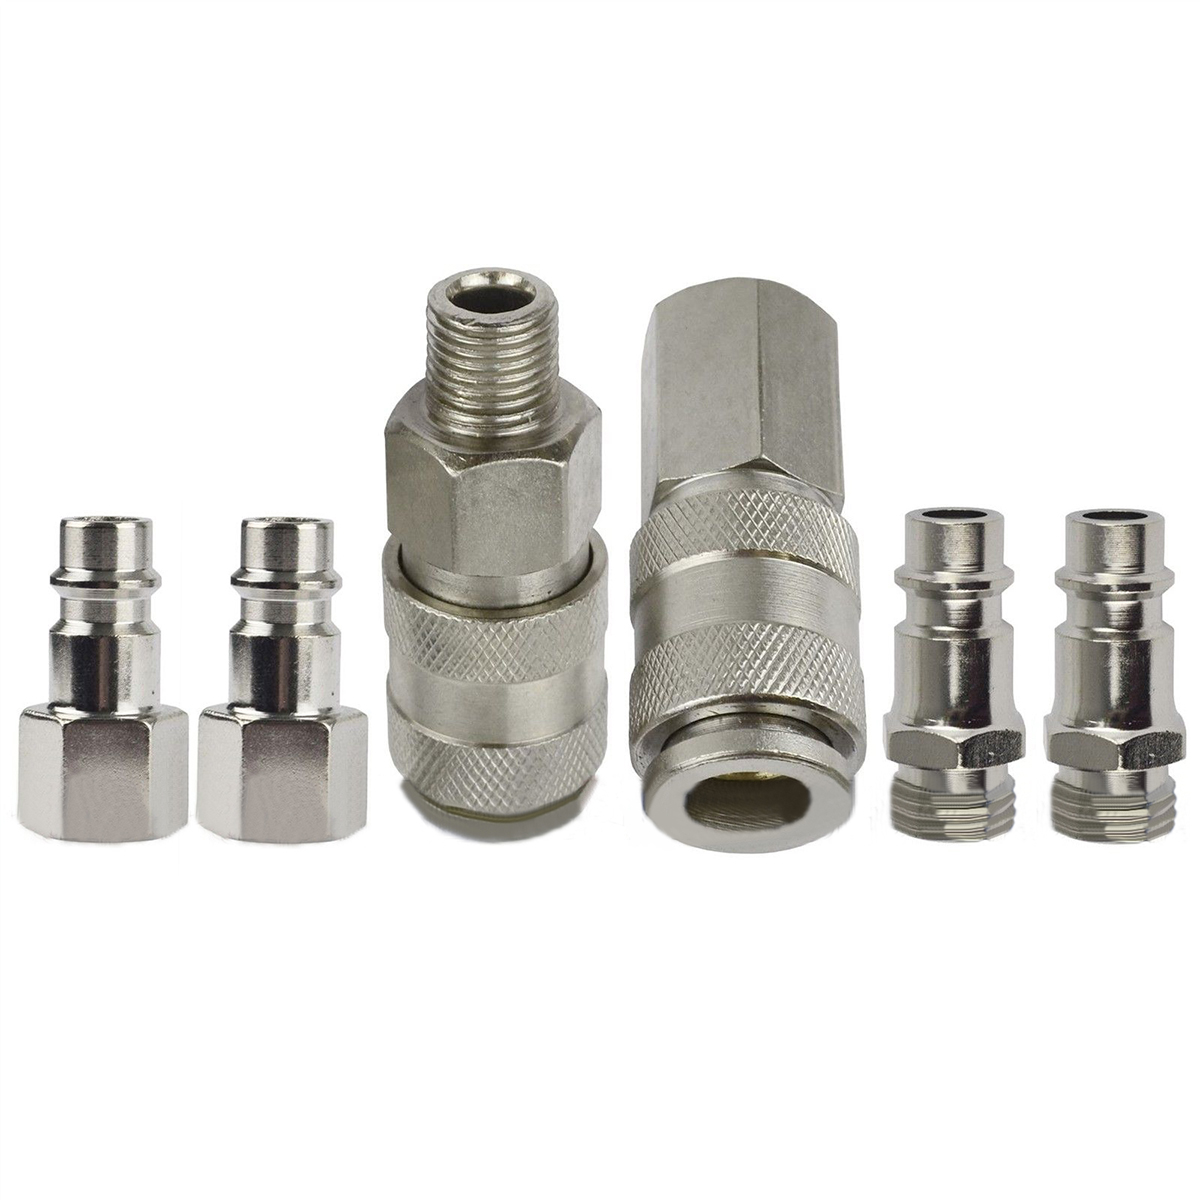 6pcs New Air Line Compressor Connector Mayitr Euro Fittings Quick Release Coupling Set 1/4 BSP Thread 3 8 bsp female air compressor pneumatic quick coupler connector socket fittings set